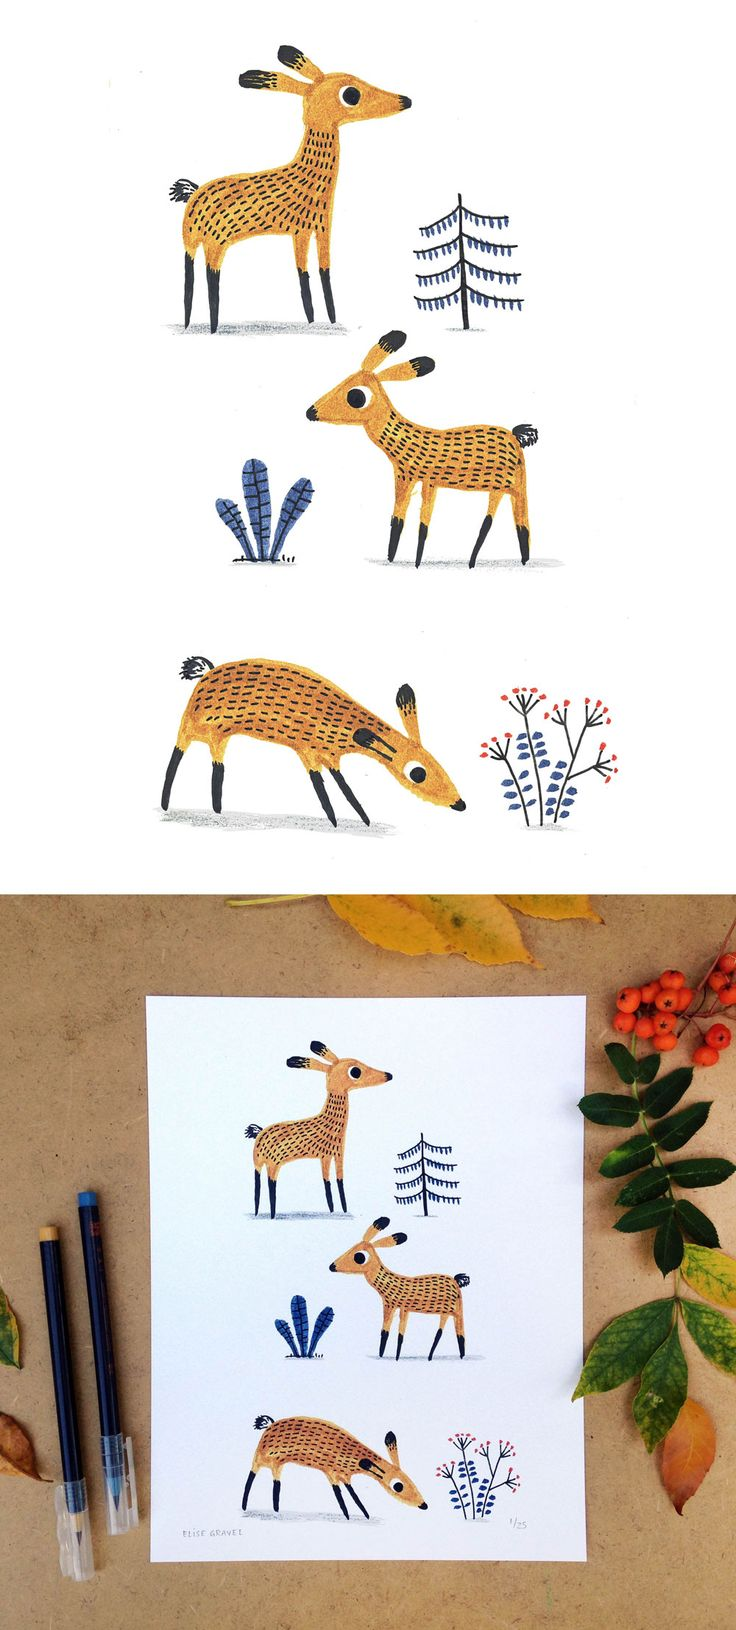 Elise Gravel illustration • print for sale   • deer • cerfs • print • drawing • animal • forest • art • watercolour • cute • brown • blue